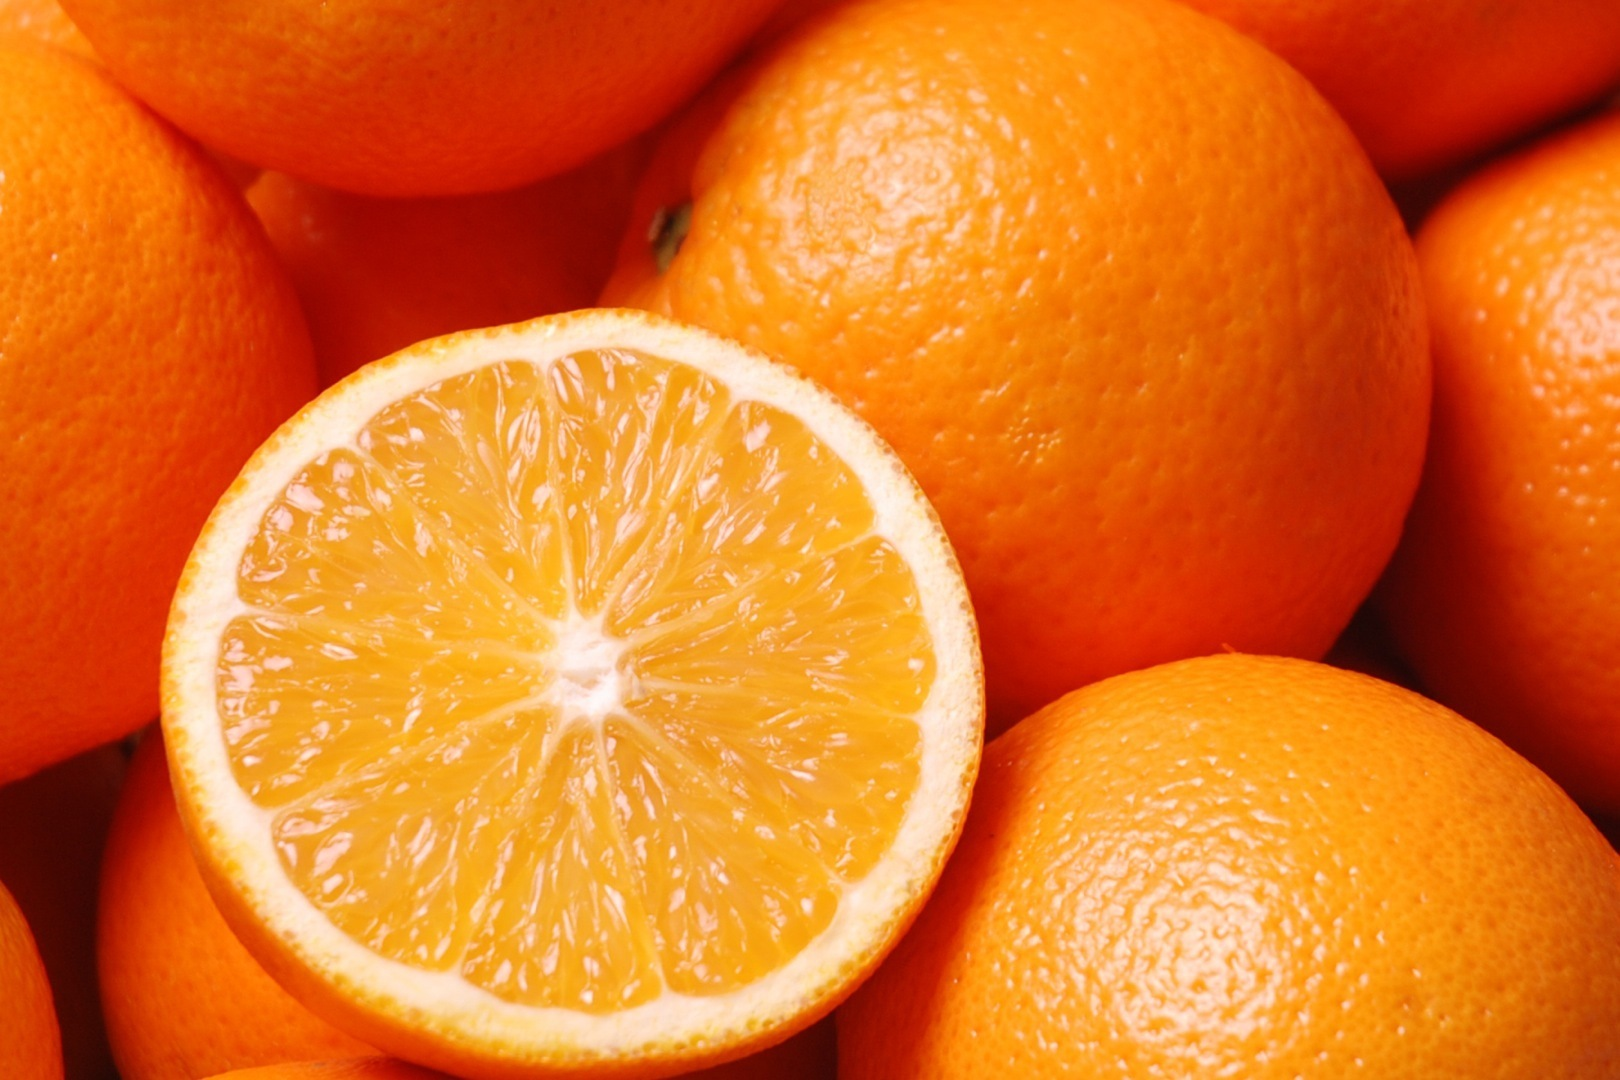 5.  Smell an orange. Try eating/smelling an orange every morning for breakfast or dabbing orange oil on your wrists. Studies have found that the scent of an orange can boost mood, decrease stress and make you feel more alert!